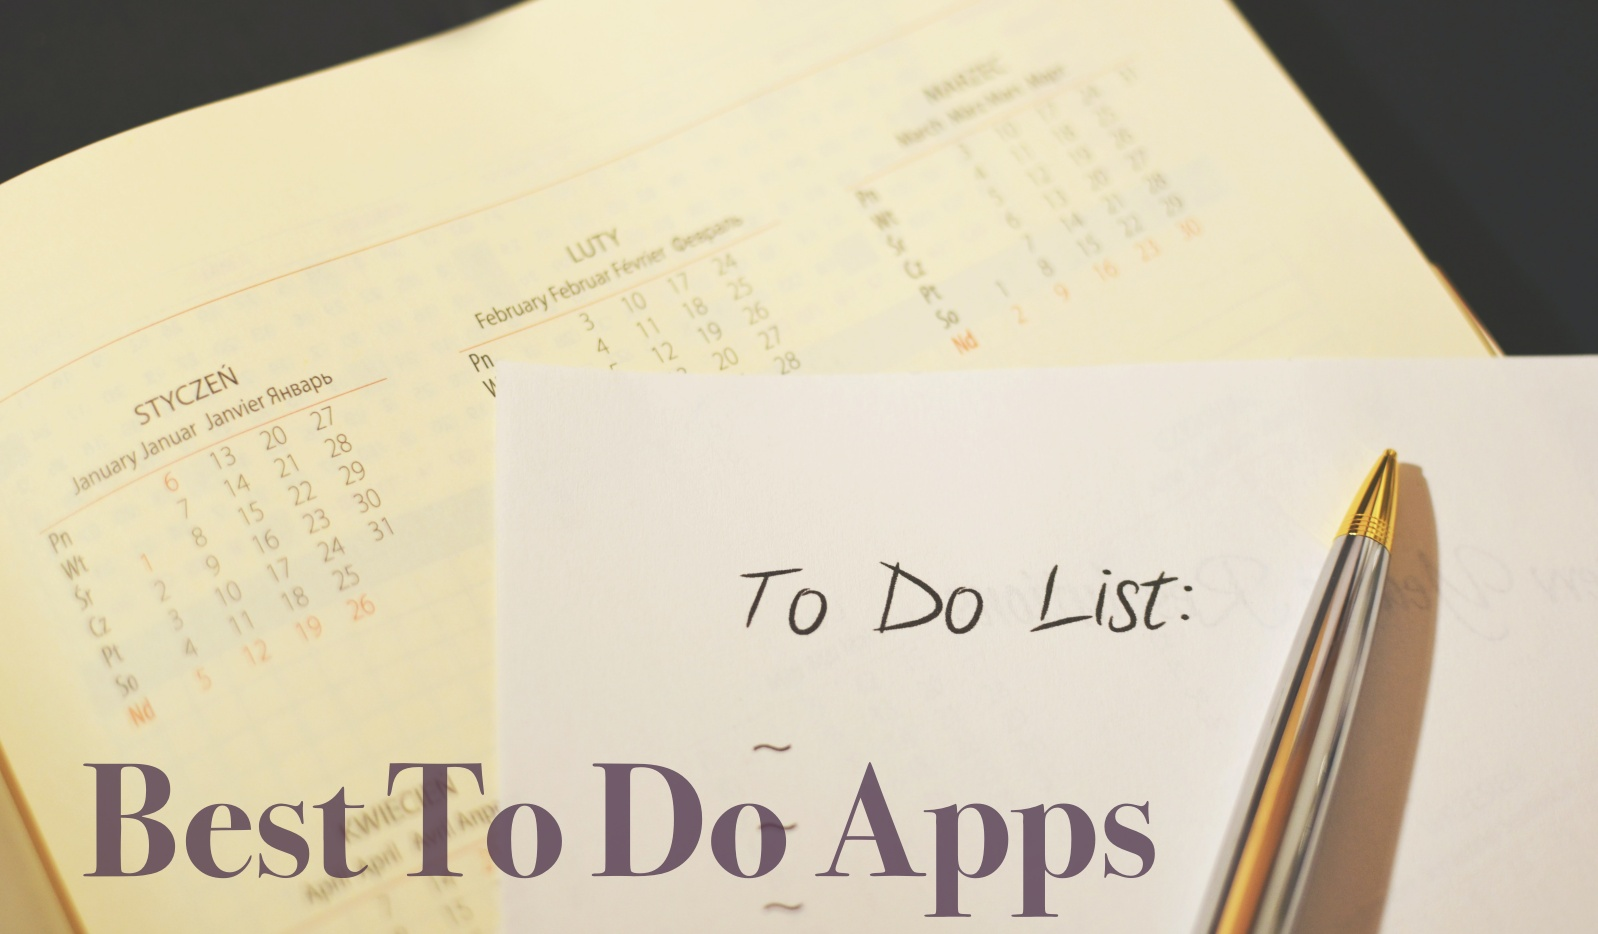 Best To Do Apps for iPhone, iPad & Apple Watch